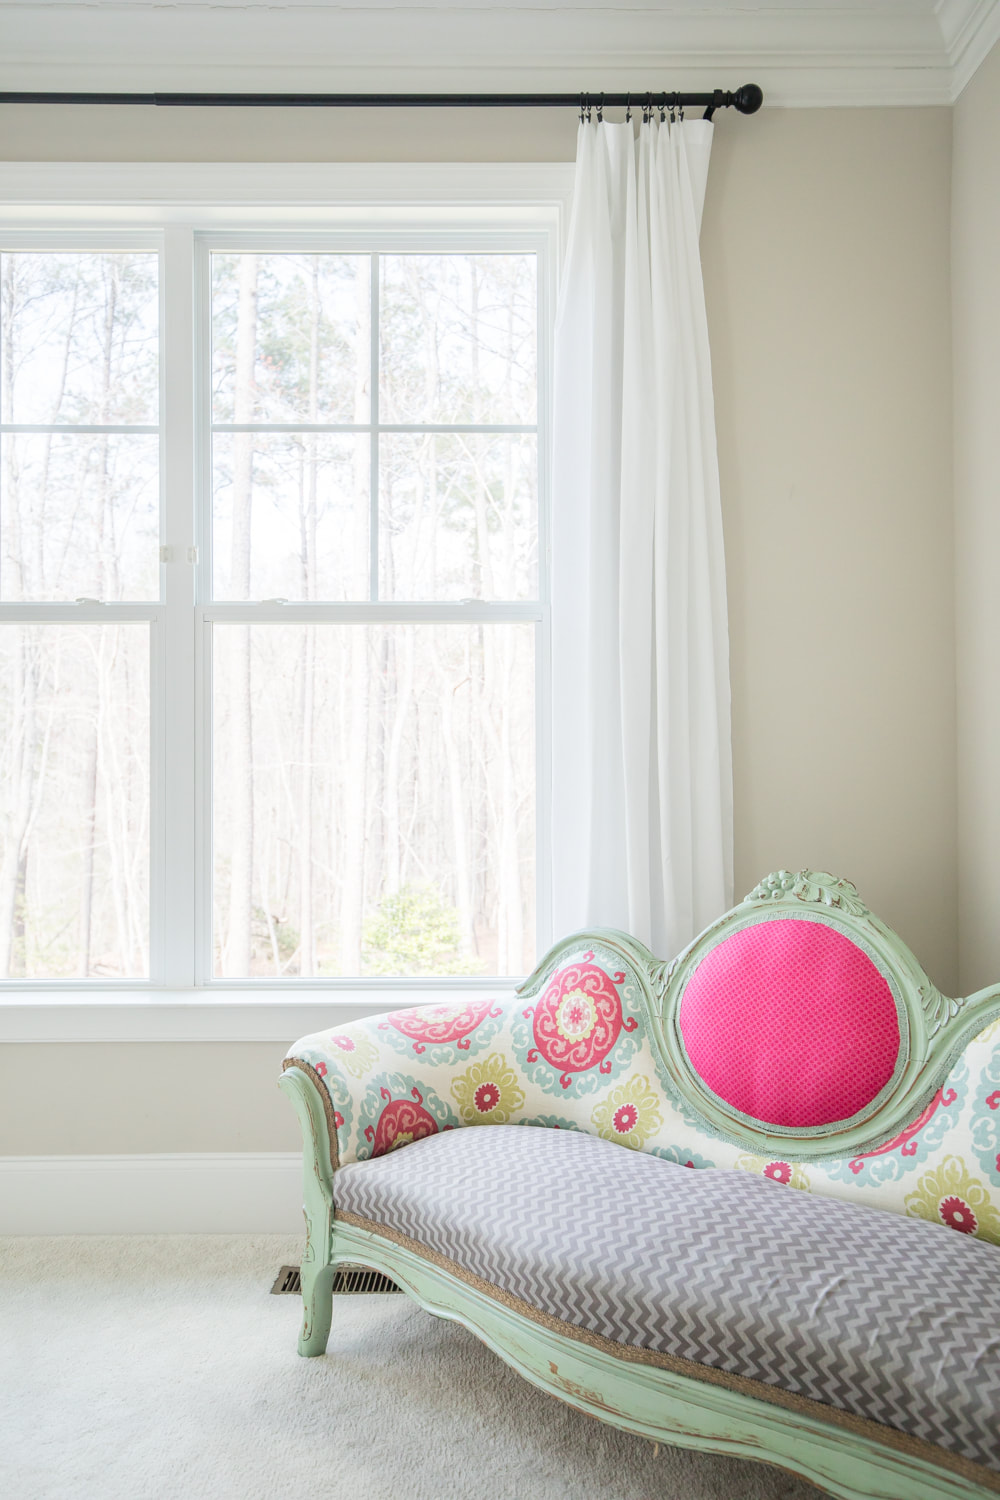 Gorgeous curtain panels for just $7 each! Such a great DIY idea. (Sofa by window in master bedroom.) By Calm Cradle Photo & Design